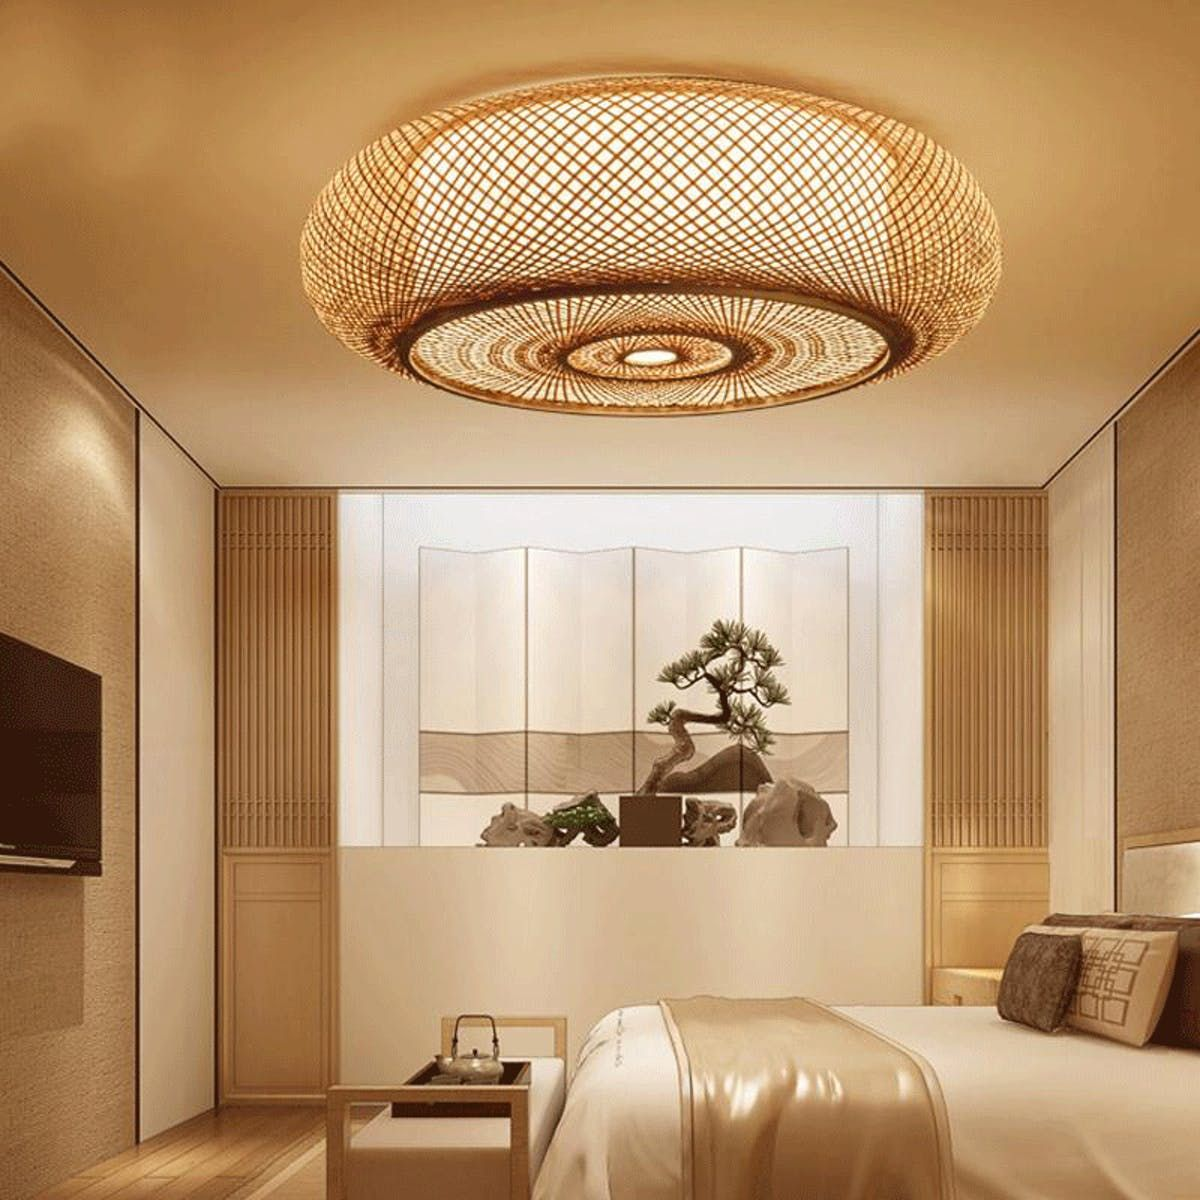 Bamboo Round Ceiling Plafon Lamp In 2020 Ceiling Lights Living Room Bedroom Ceiling Light Ceiling Light Design